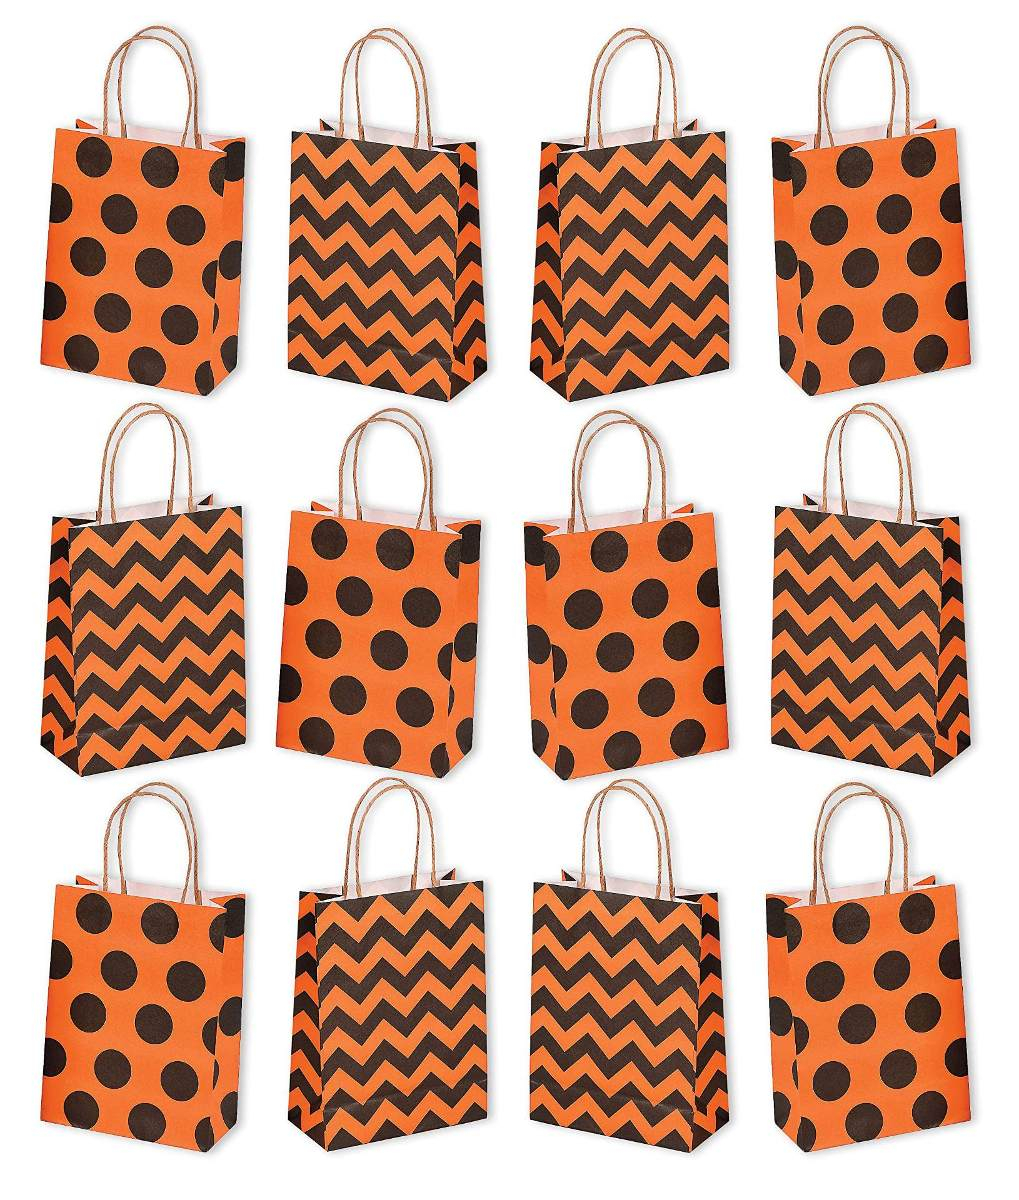 Handmade Paper Craft Gifts You can Make Right Now Halloween Paper Craft Party Gift Goodie Bags Pack De 12 Bol